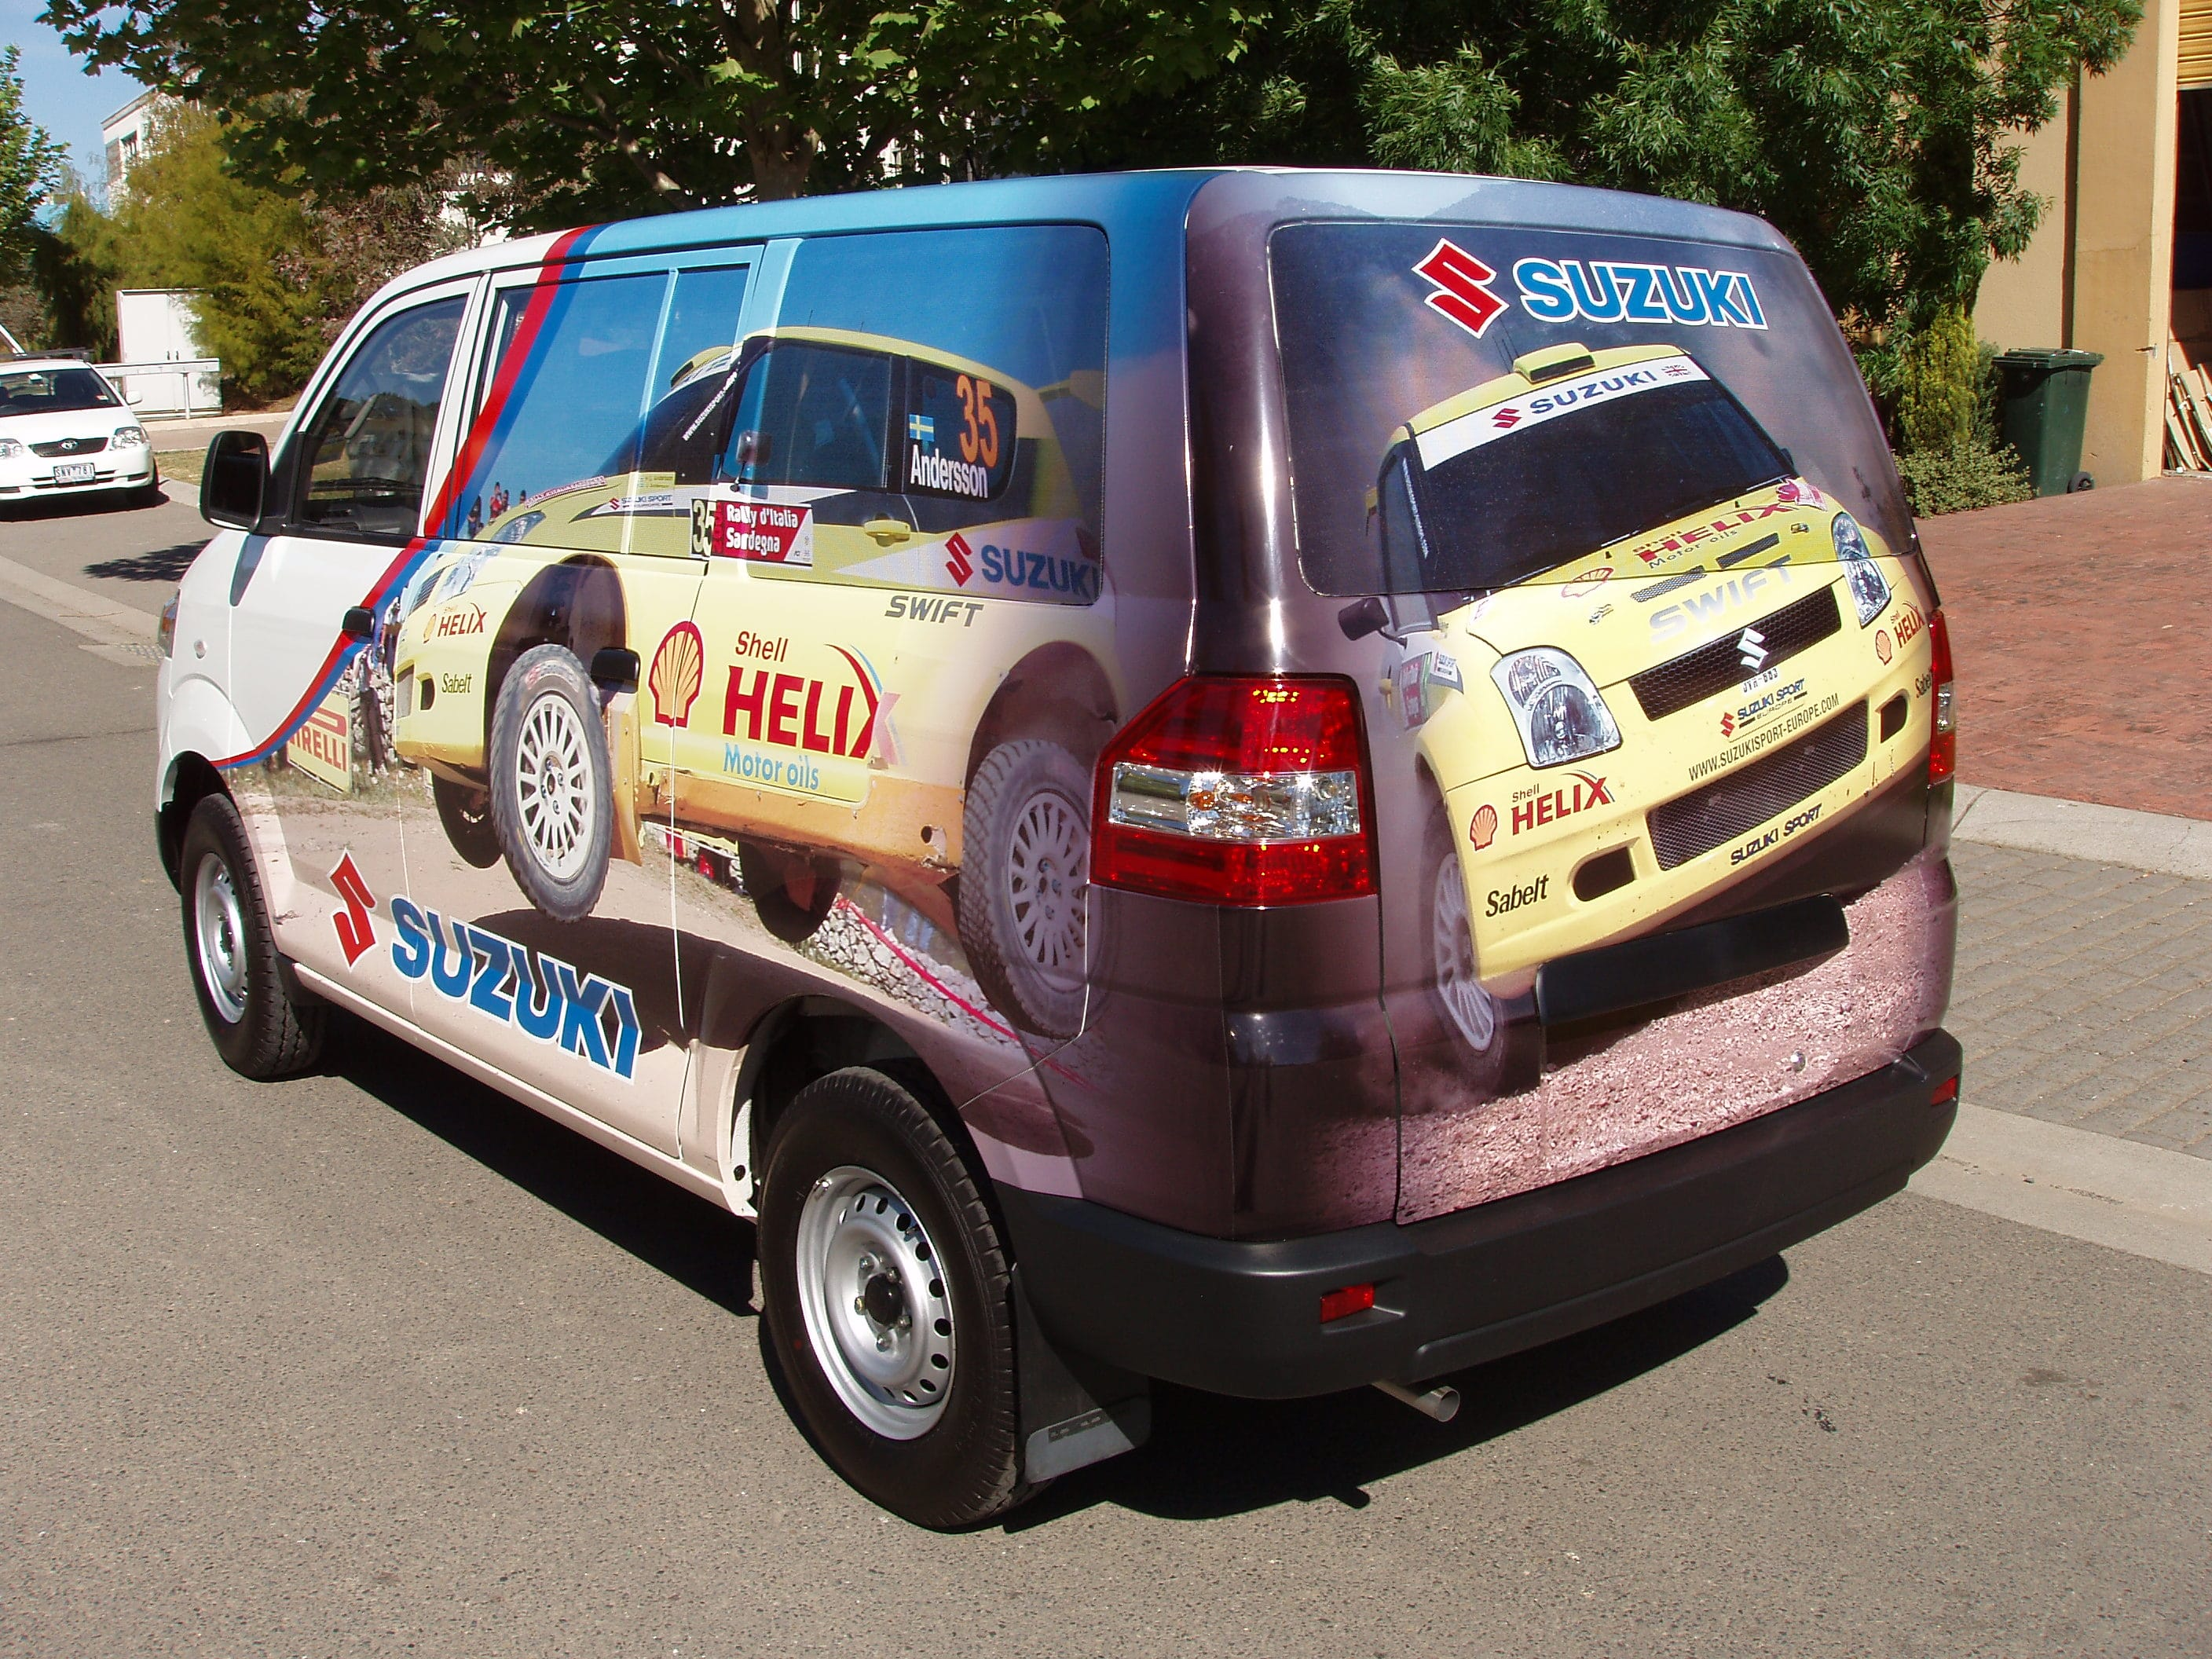 Van team Suzuki vehicle signage